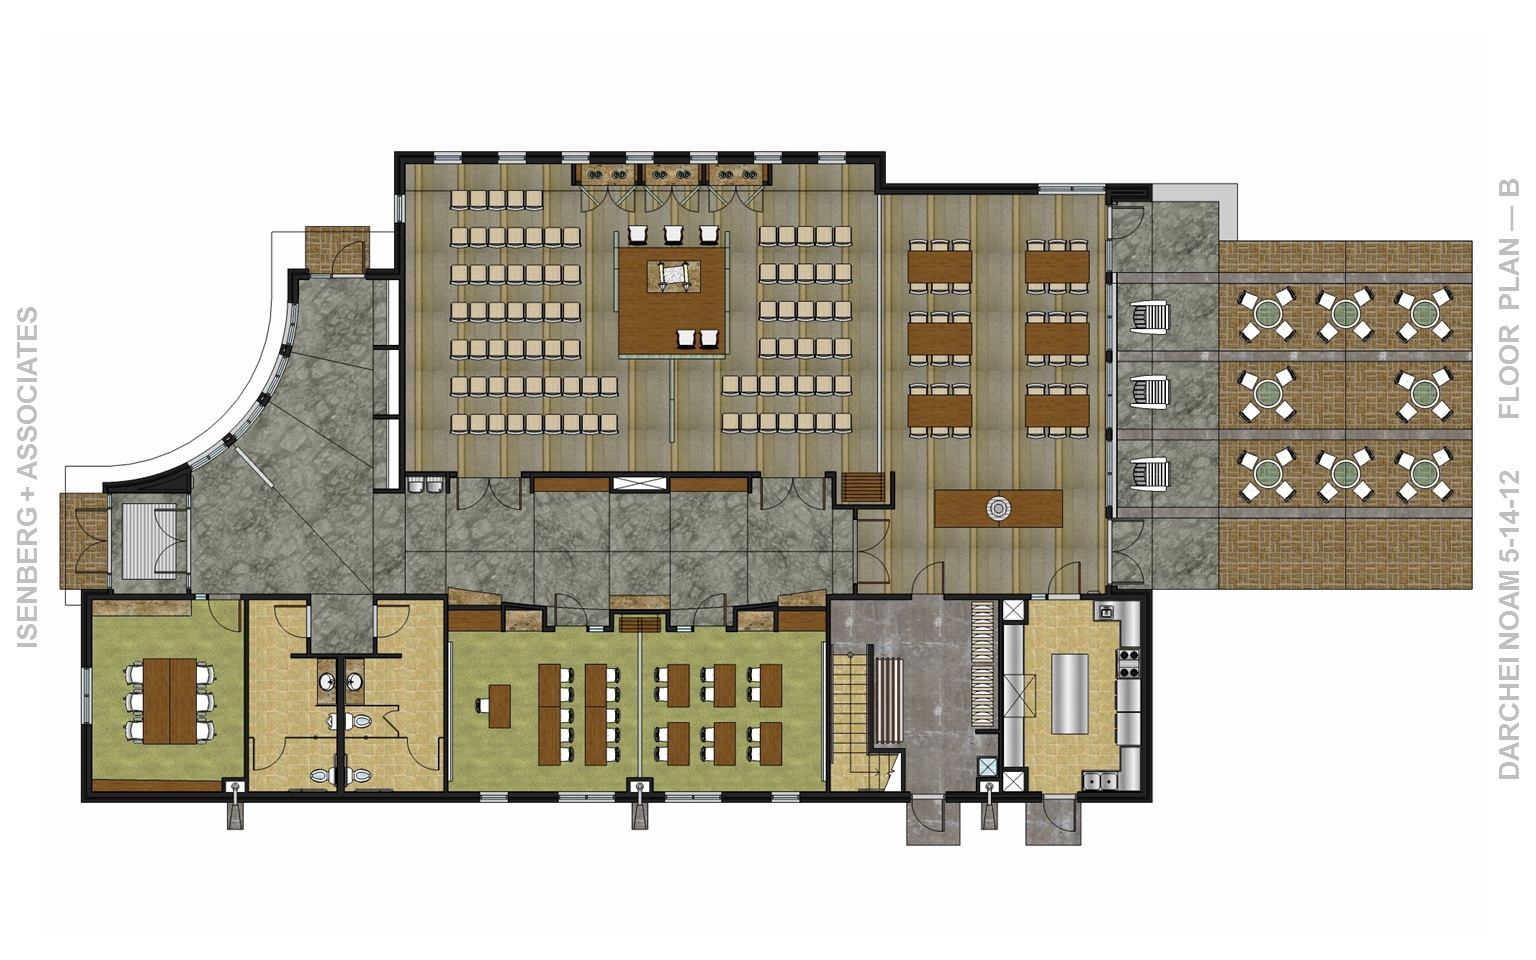 DN_Floor Plan.jpg